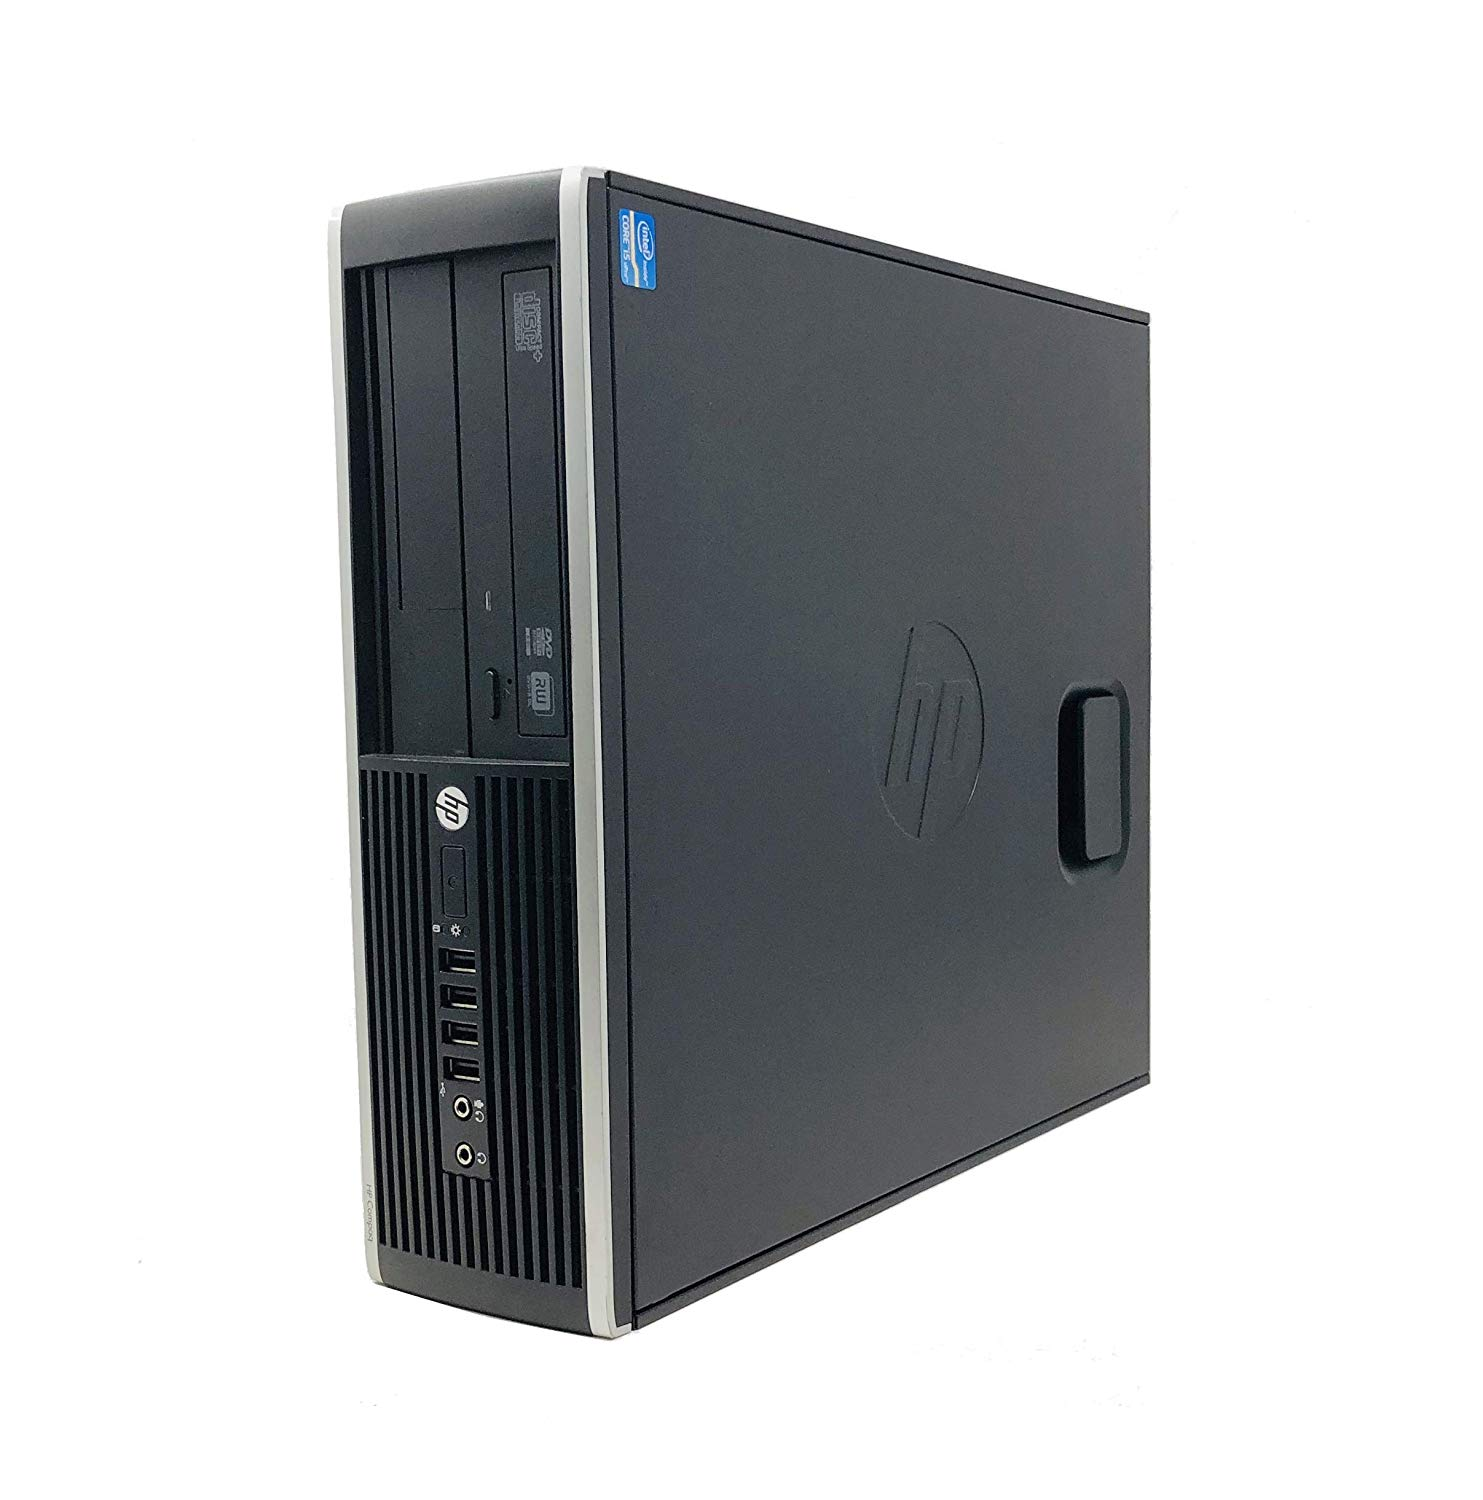 Hp Elite 8200 - Ordenador De Sobremesa (Intel  I5-2400, Sin Lector 8GB De RAM, Disco HDD De 500GB , Windows 7 PRO ) - Negro (Reacondicionado)